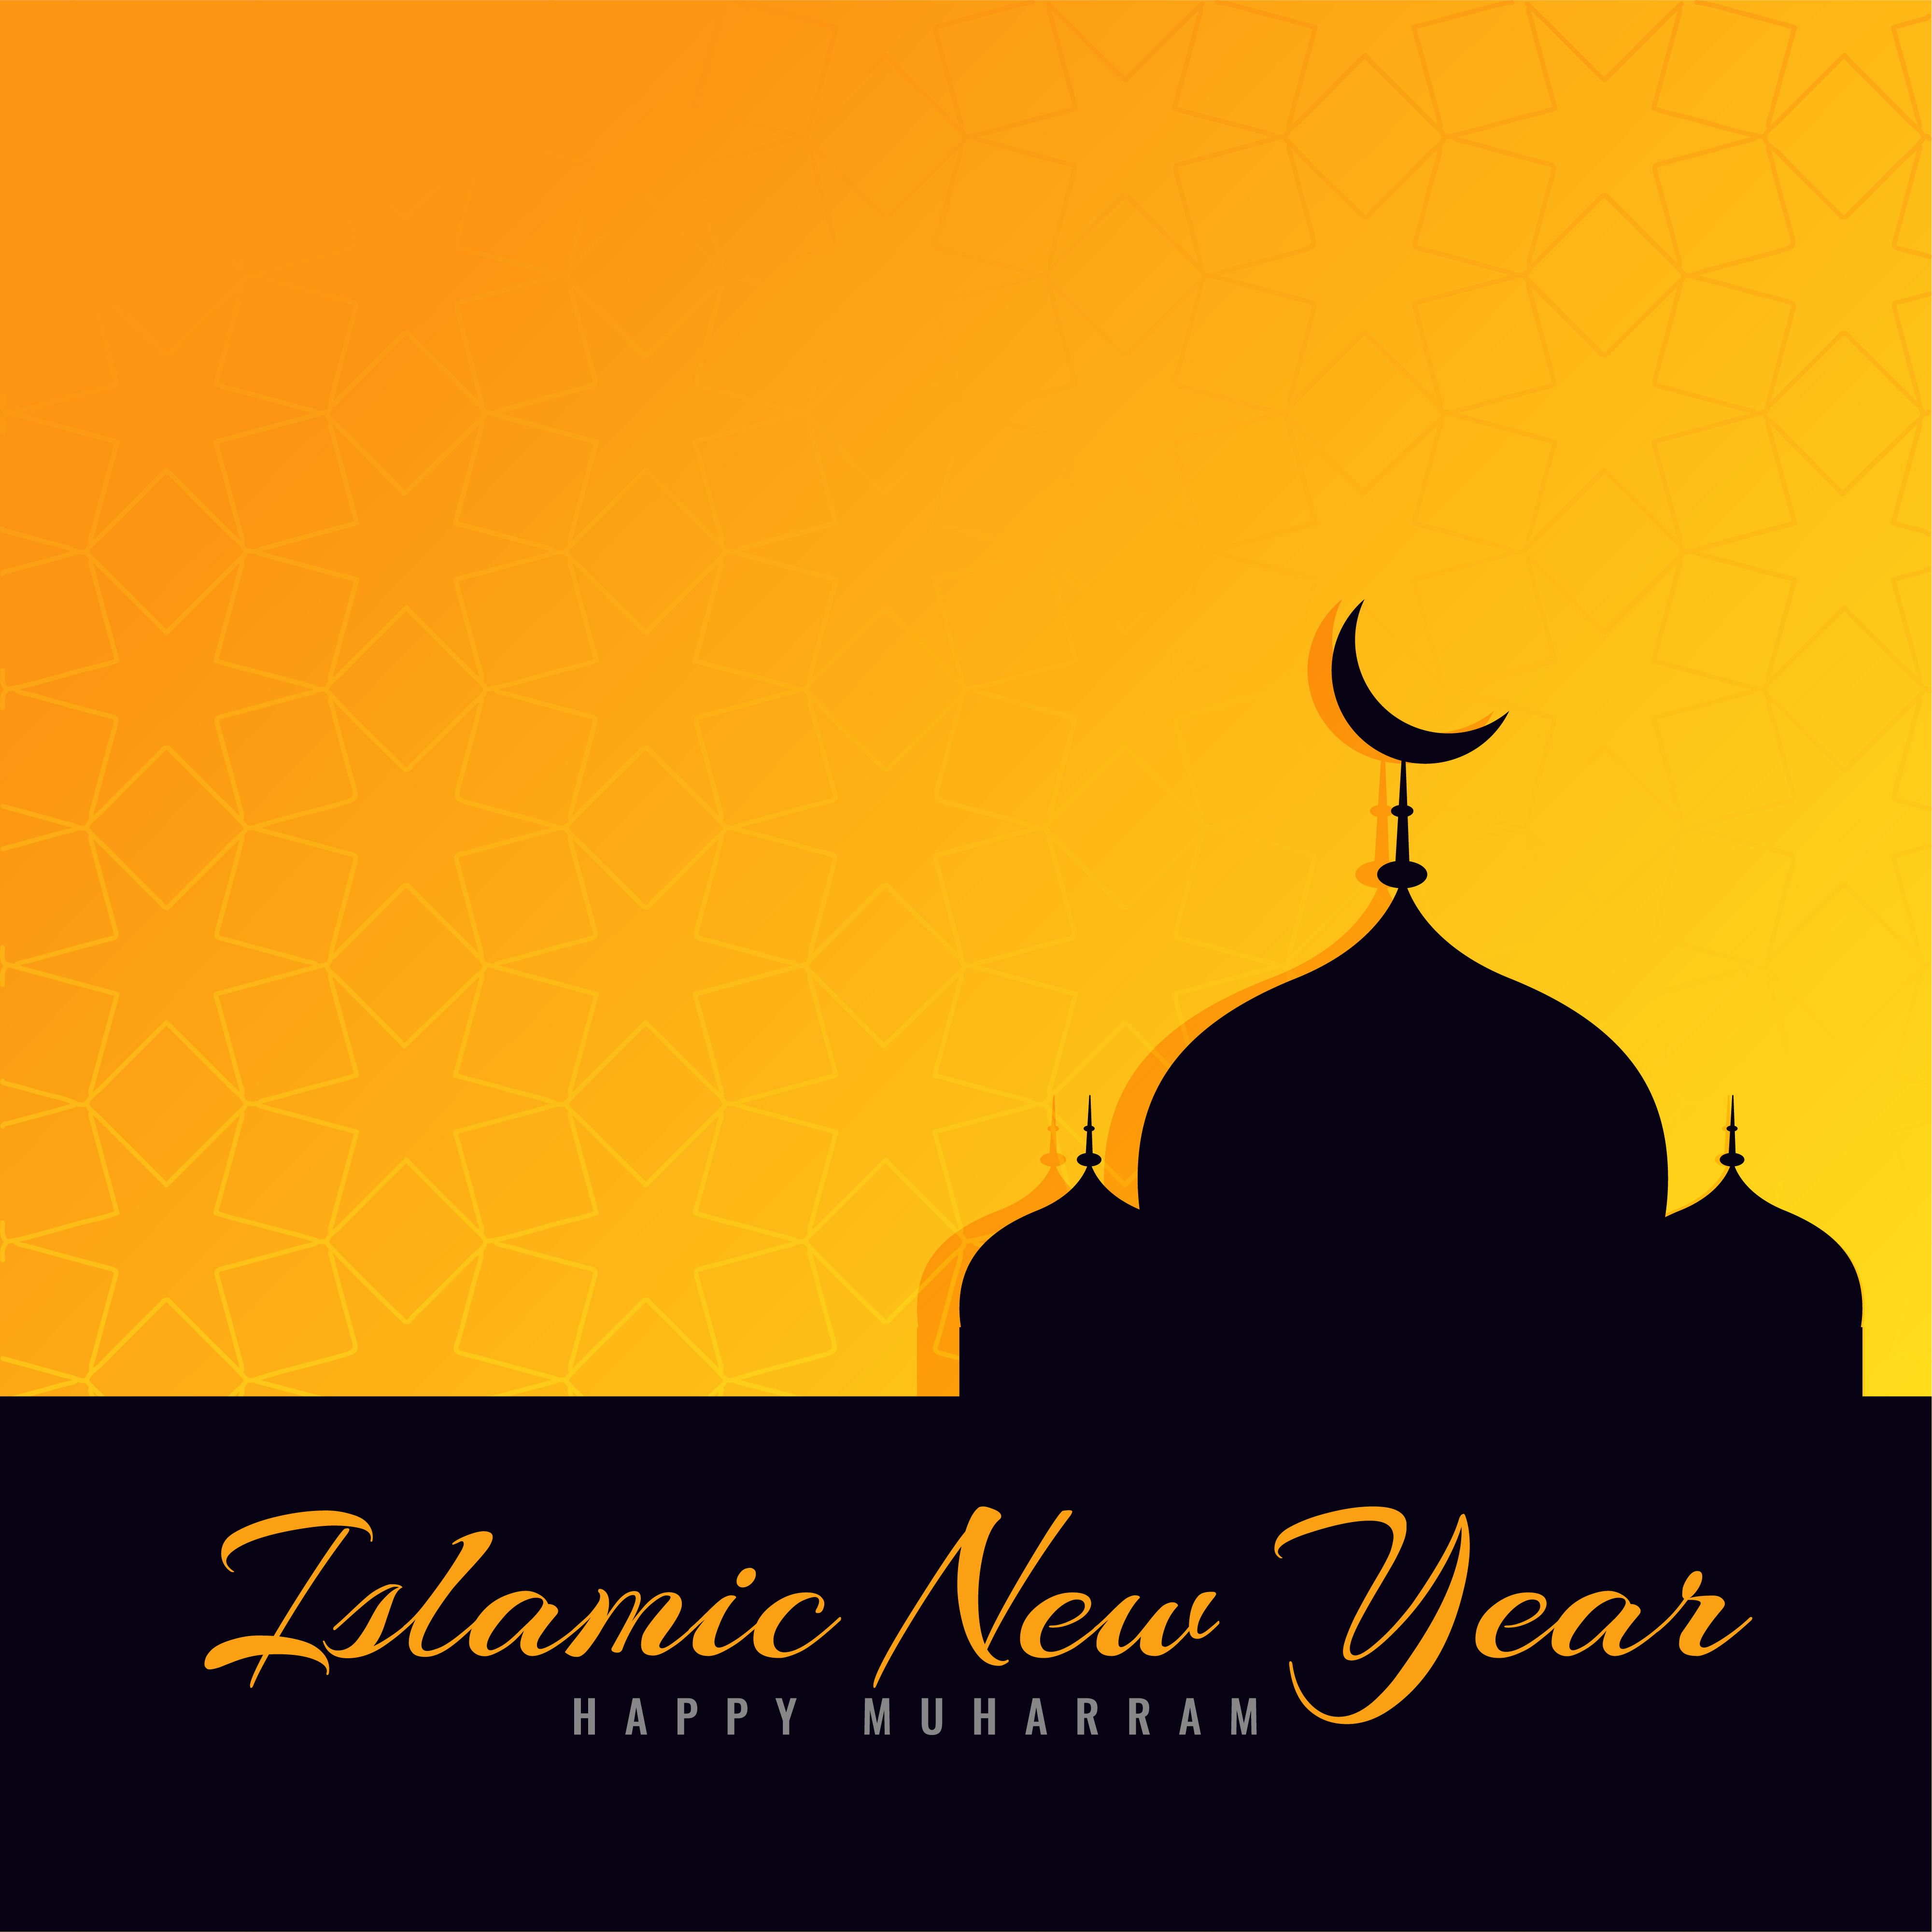 beautiful islamic new year greeting design download free vector art stock graphics images